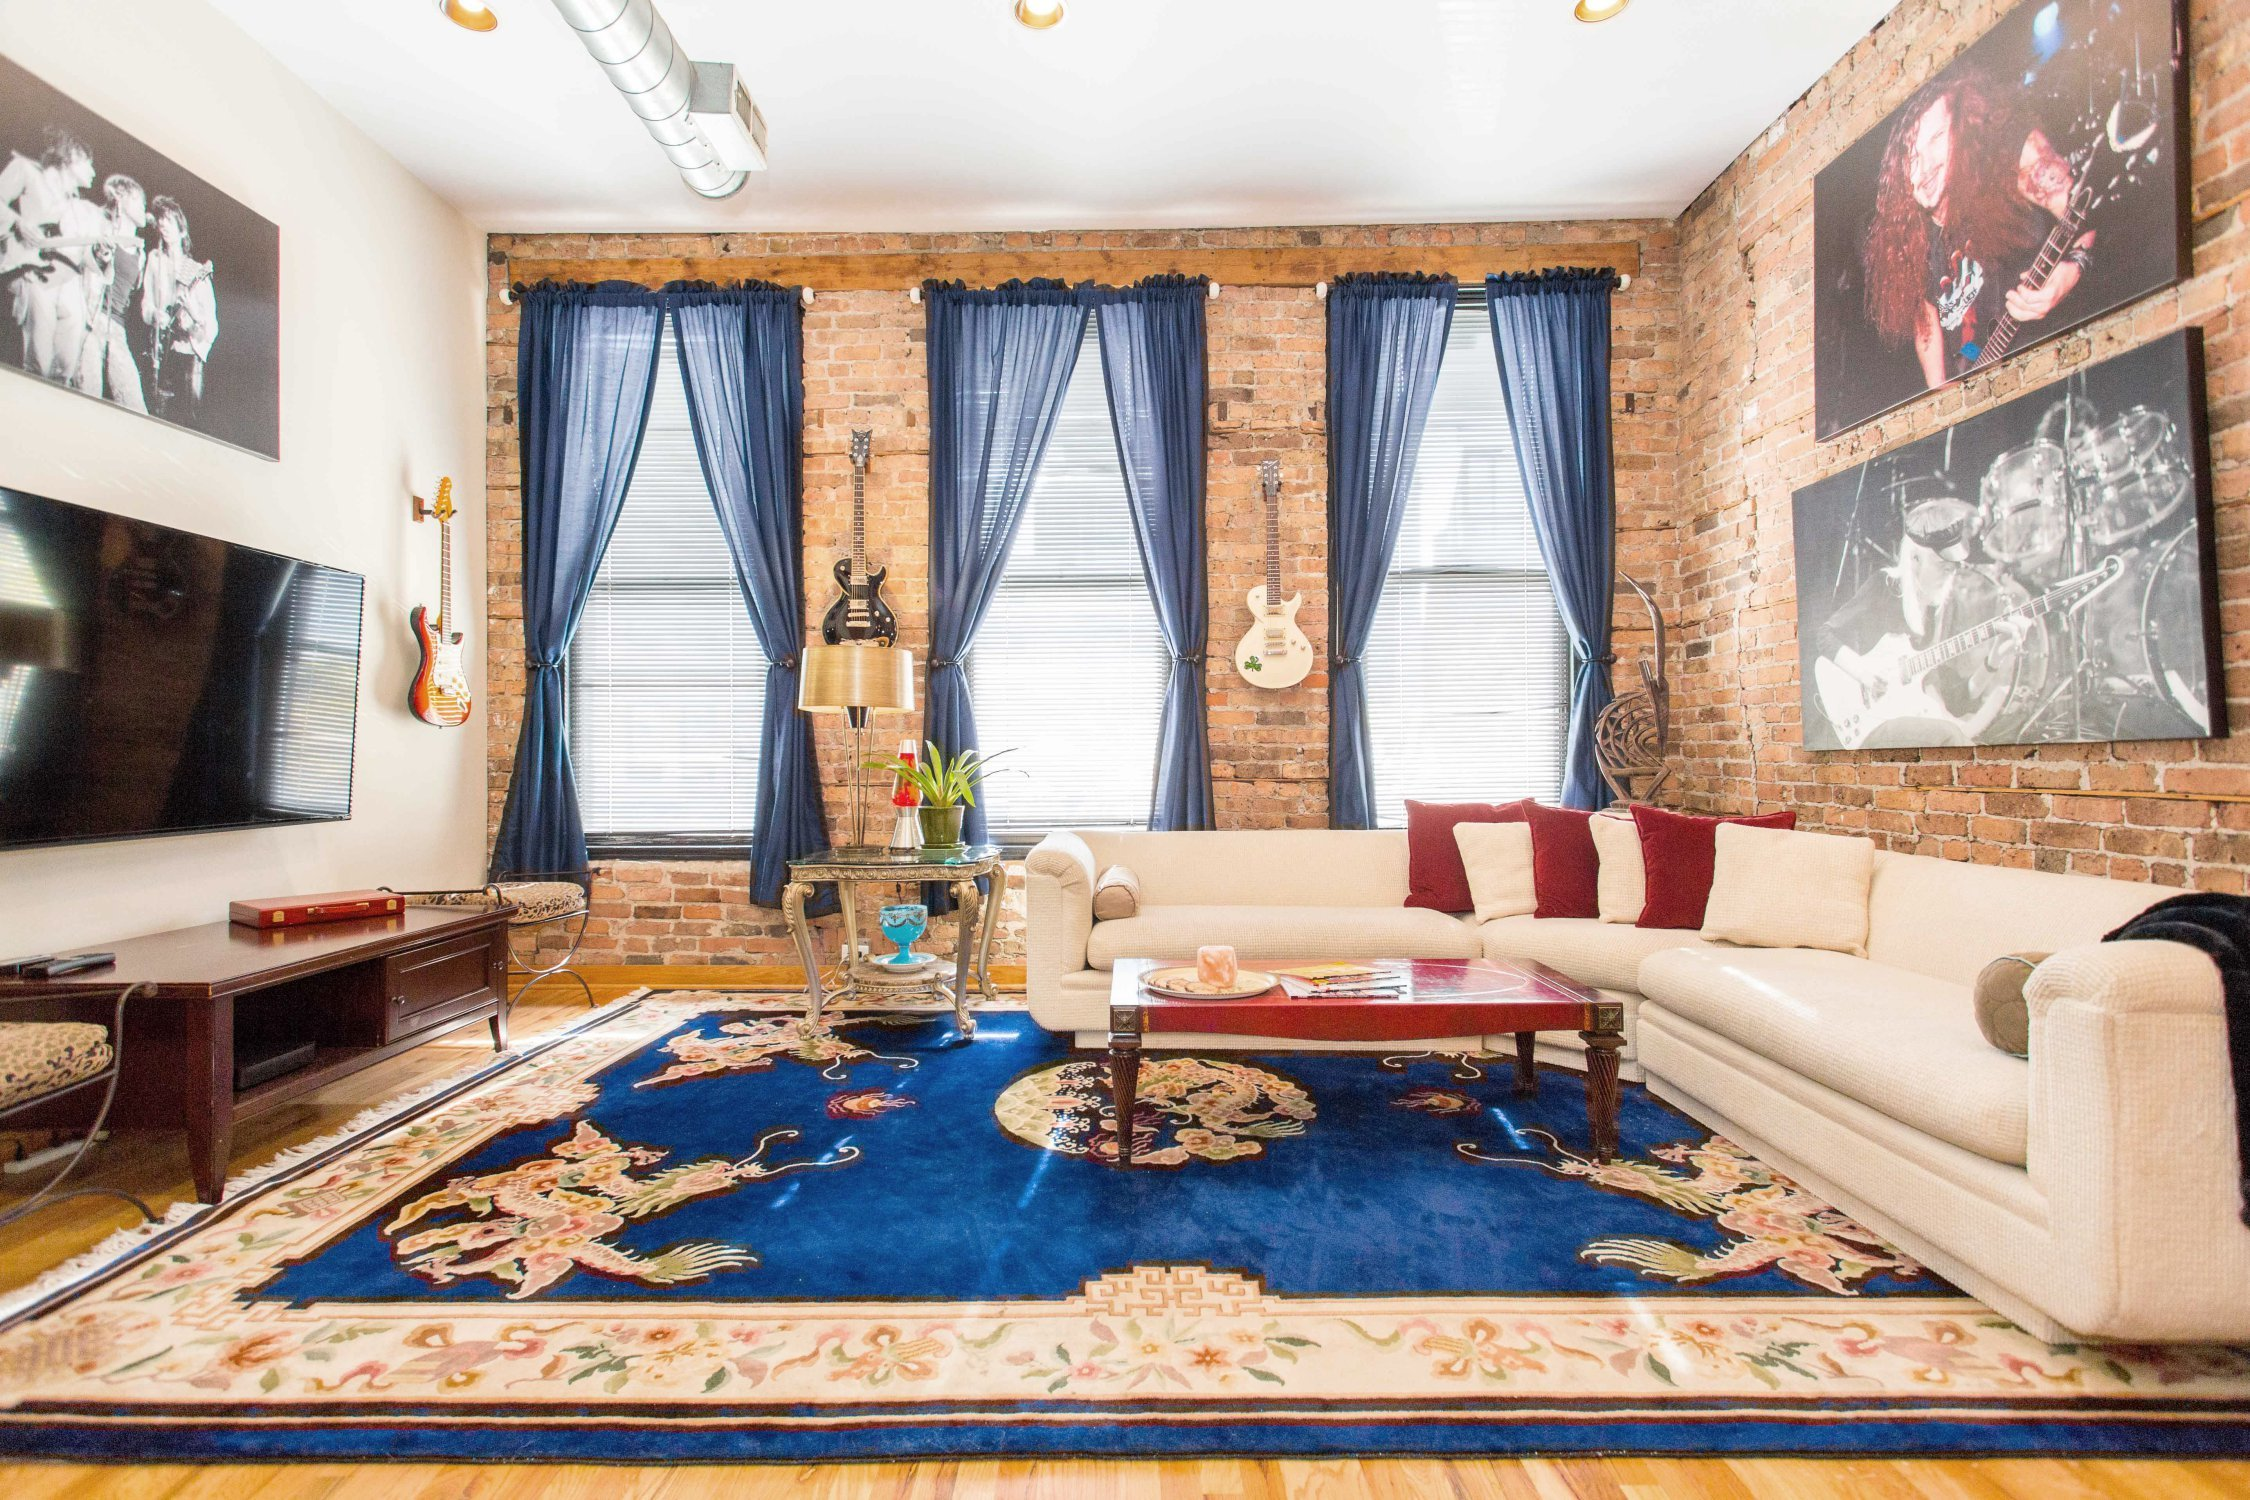 15 Coolest Airbnb Chicago Rentals